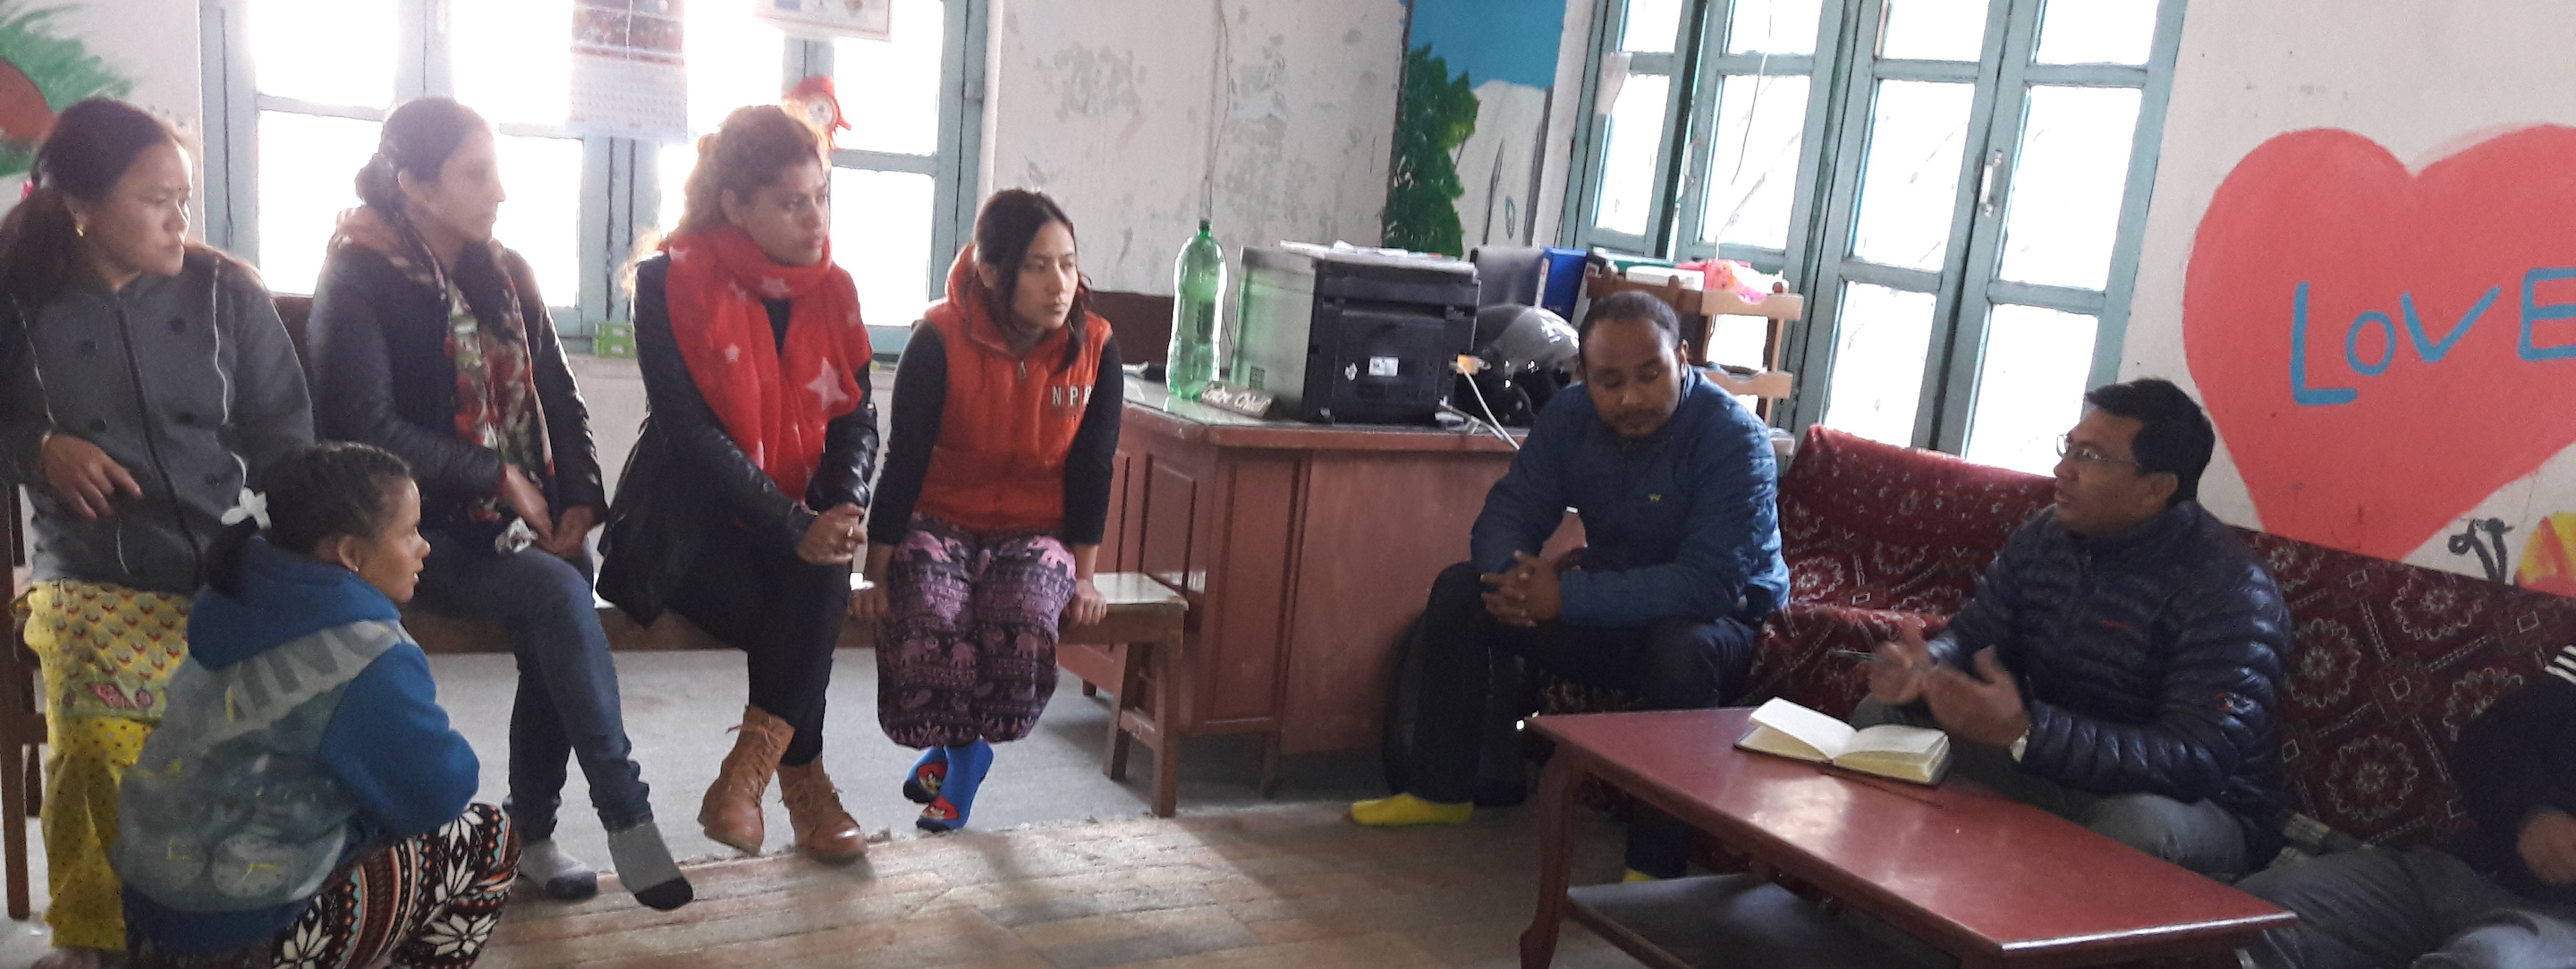 meeting about orphanage administration in nepal